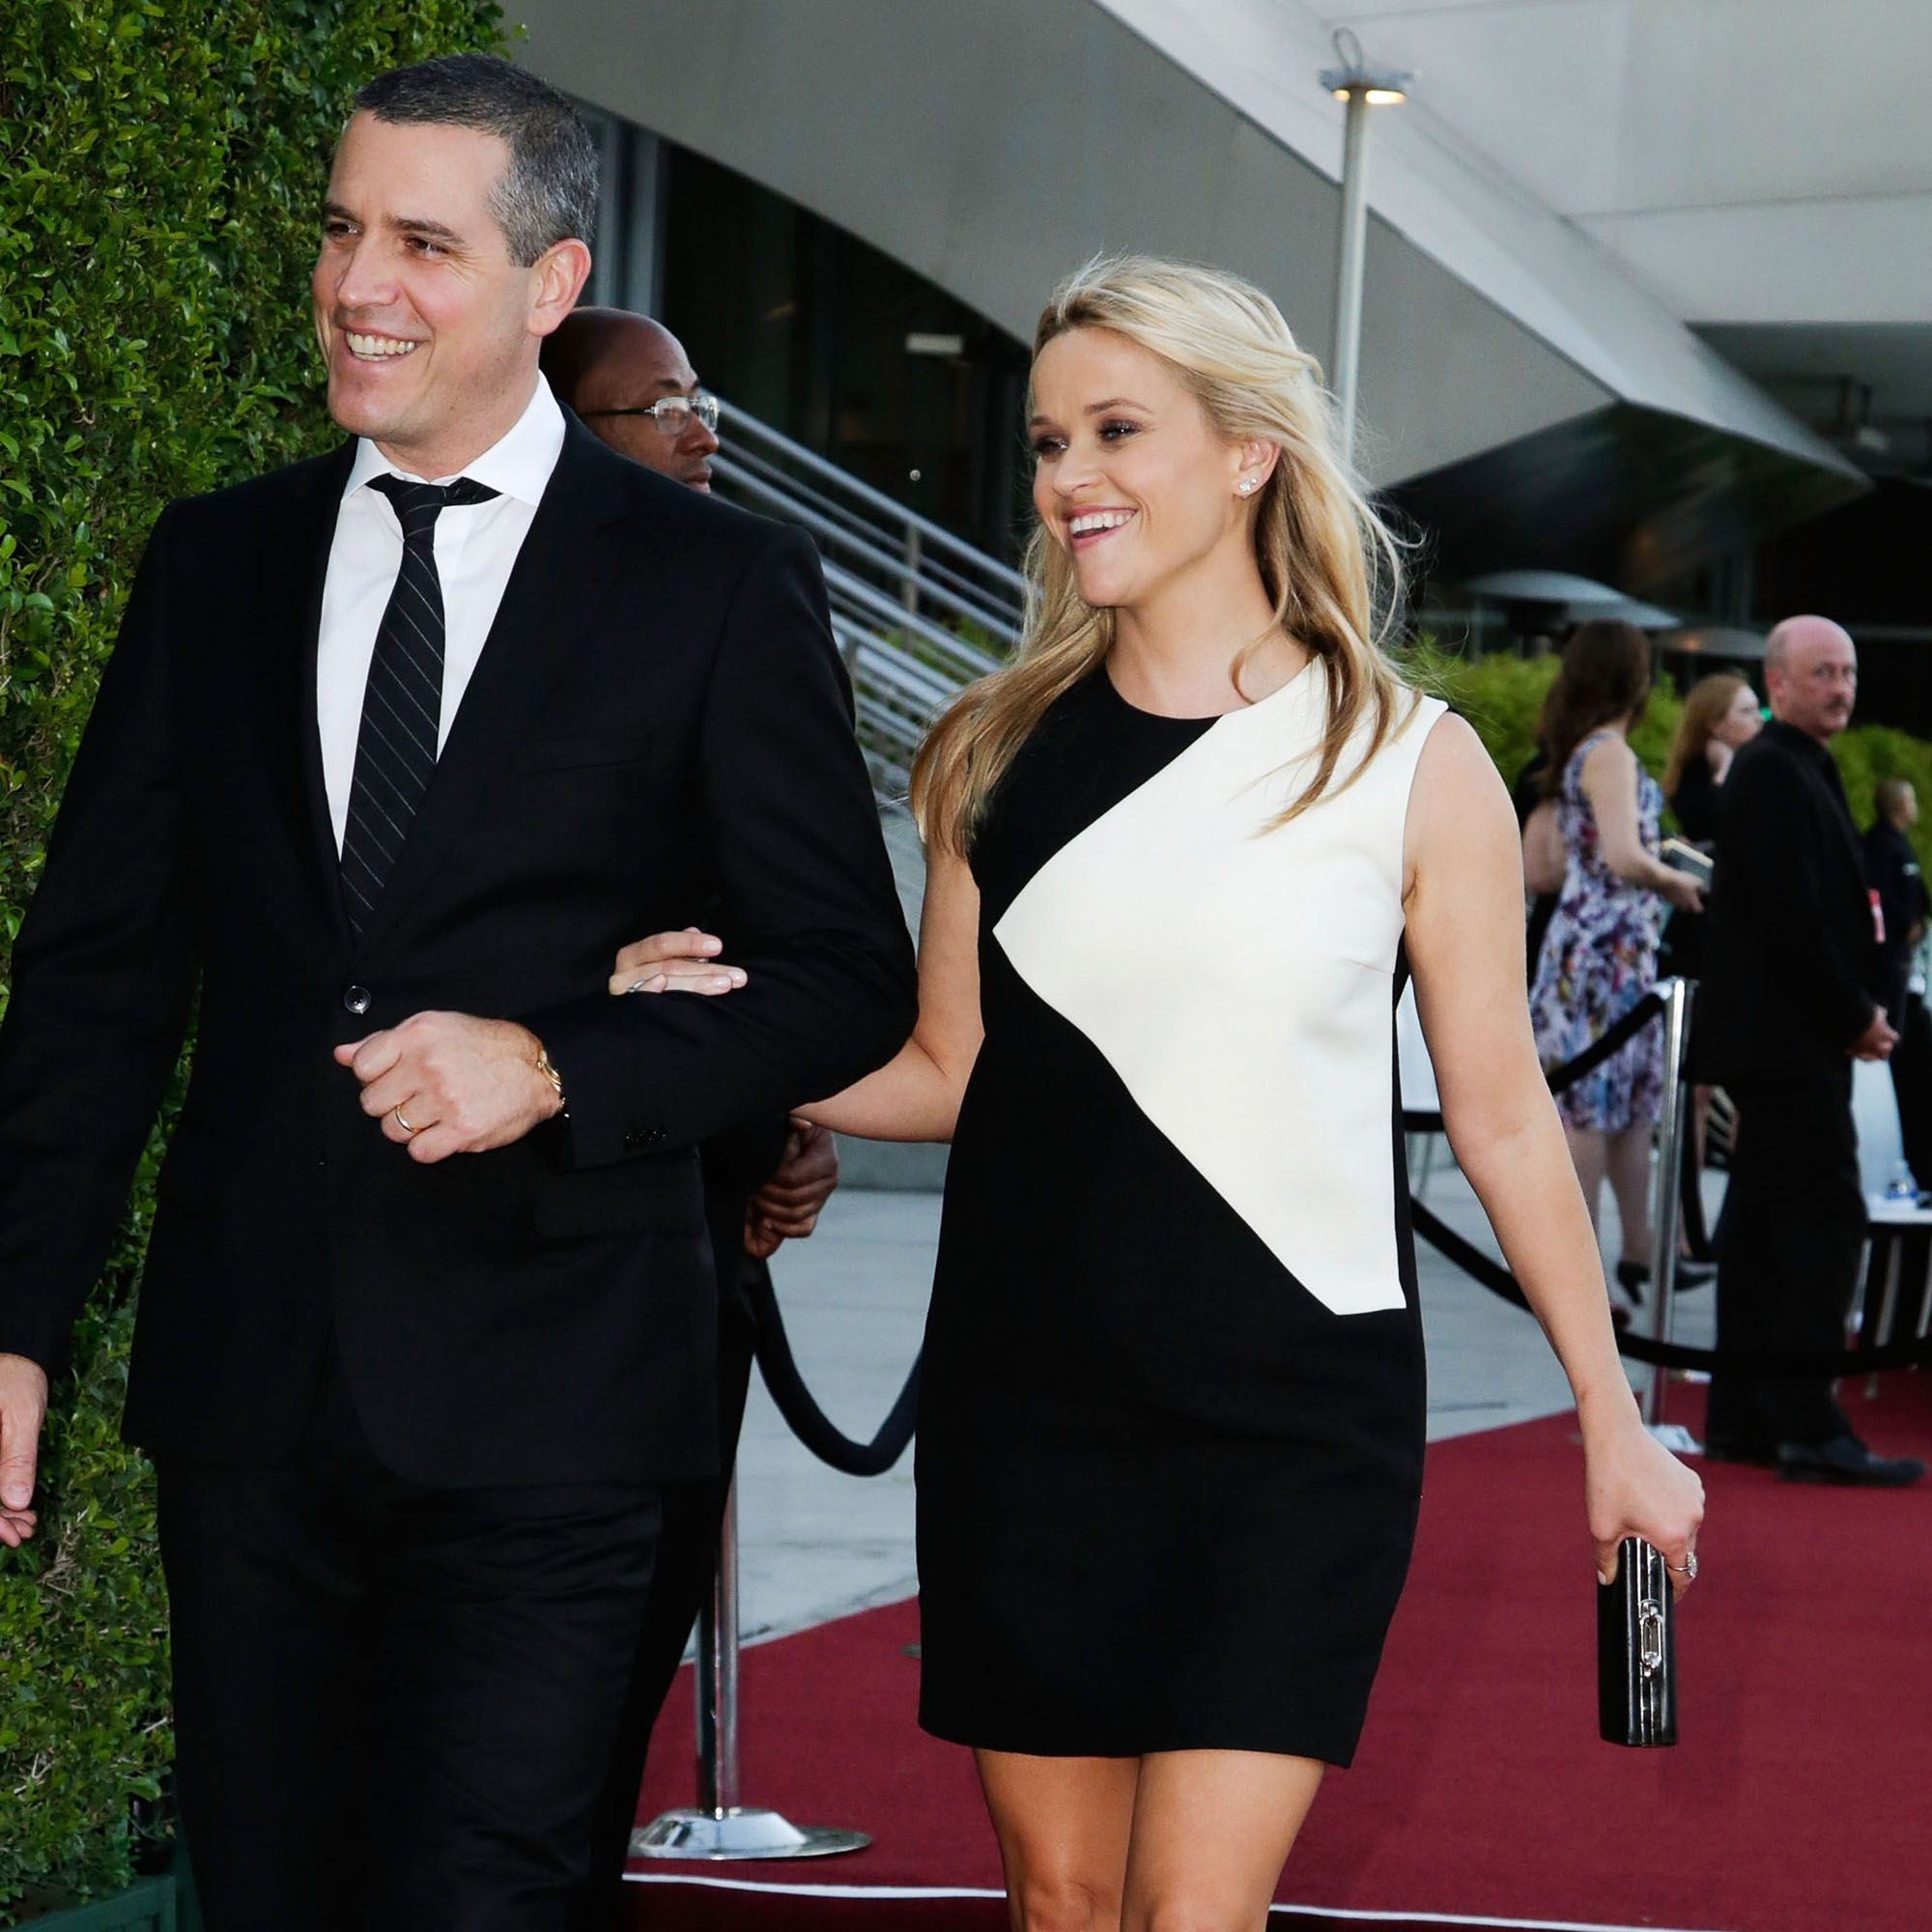 <p>After being married to fellow actor Ryan Phillipe, Witherspoon settled down with agent Jim Toth in 2011. </p>